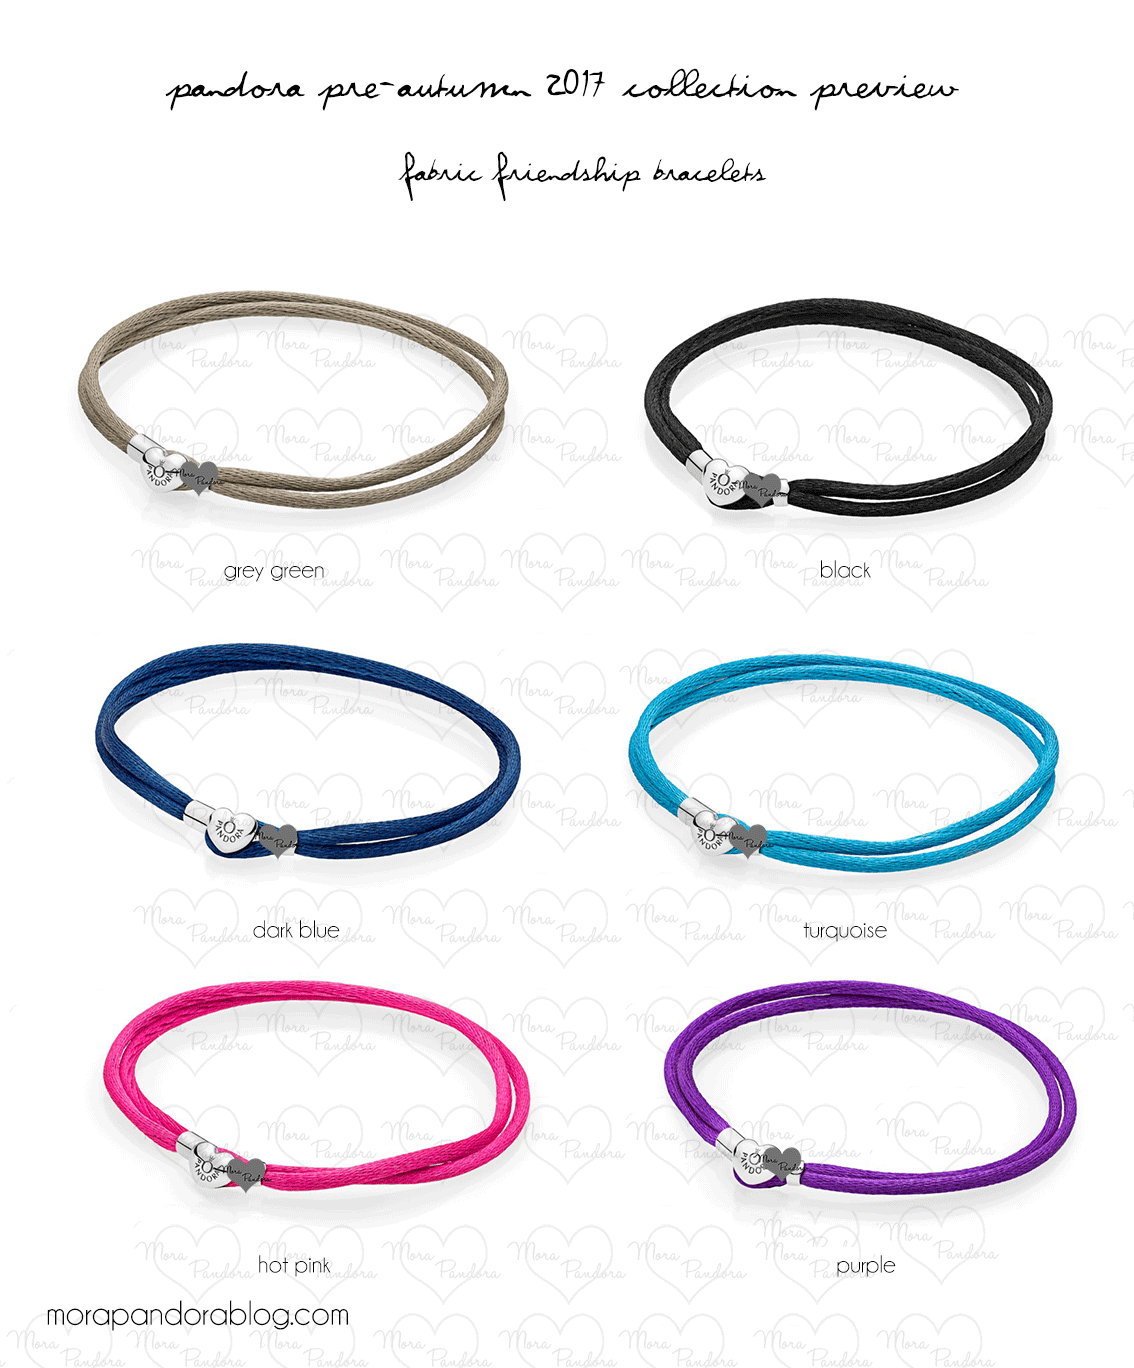 Pandora Pre Autumn 2017 Friendship Bracelets Preview Other Updates